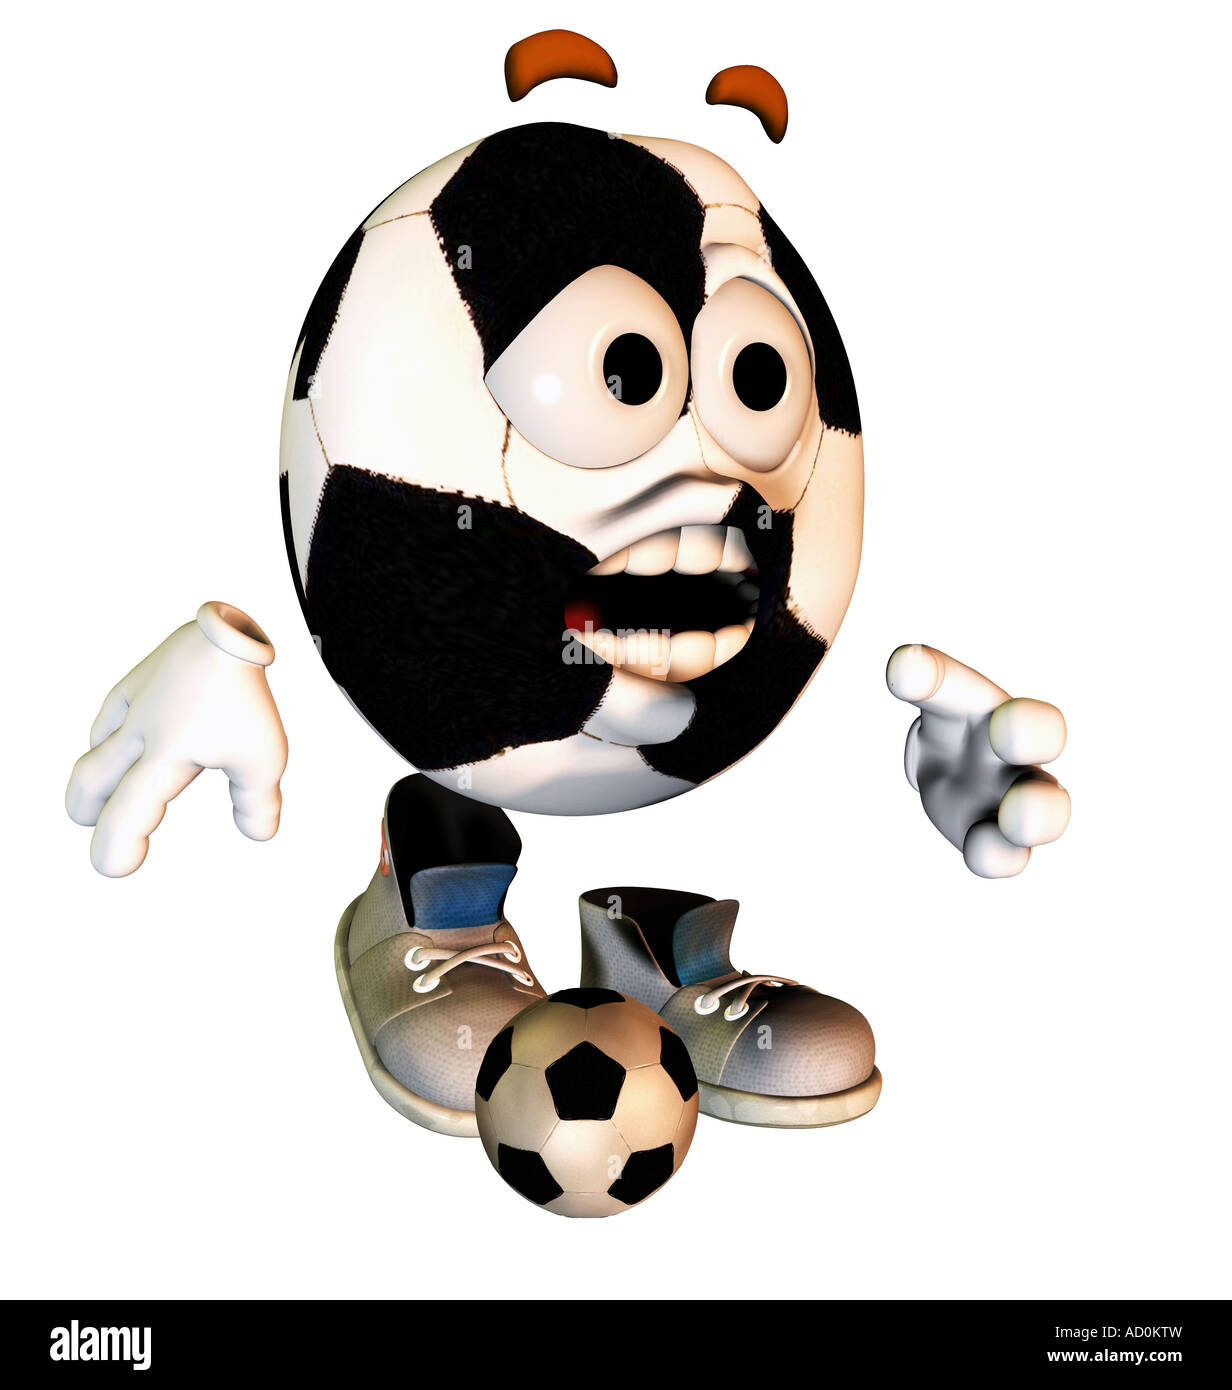 Football with face and emotions in cartoon style as symbol symbol football with face and emotions in cartoon style as symbol symbol for soccer players soccer fans and scores buycottarizona